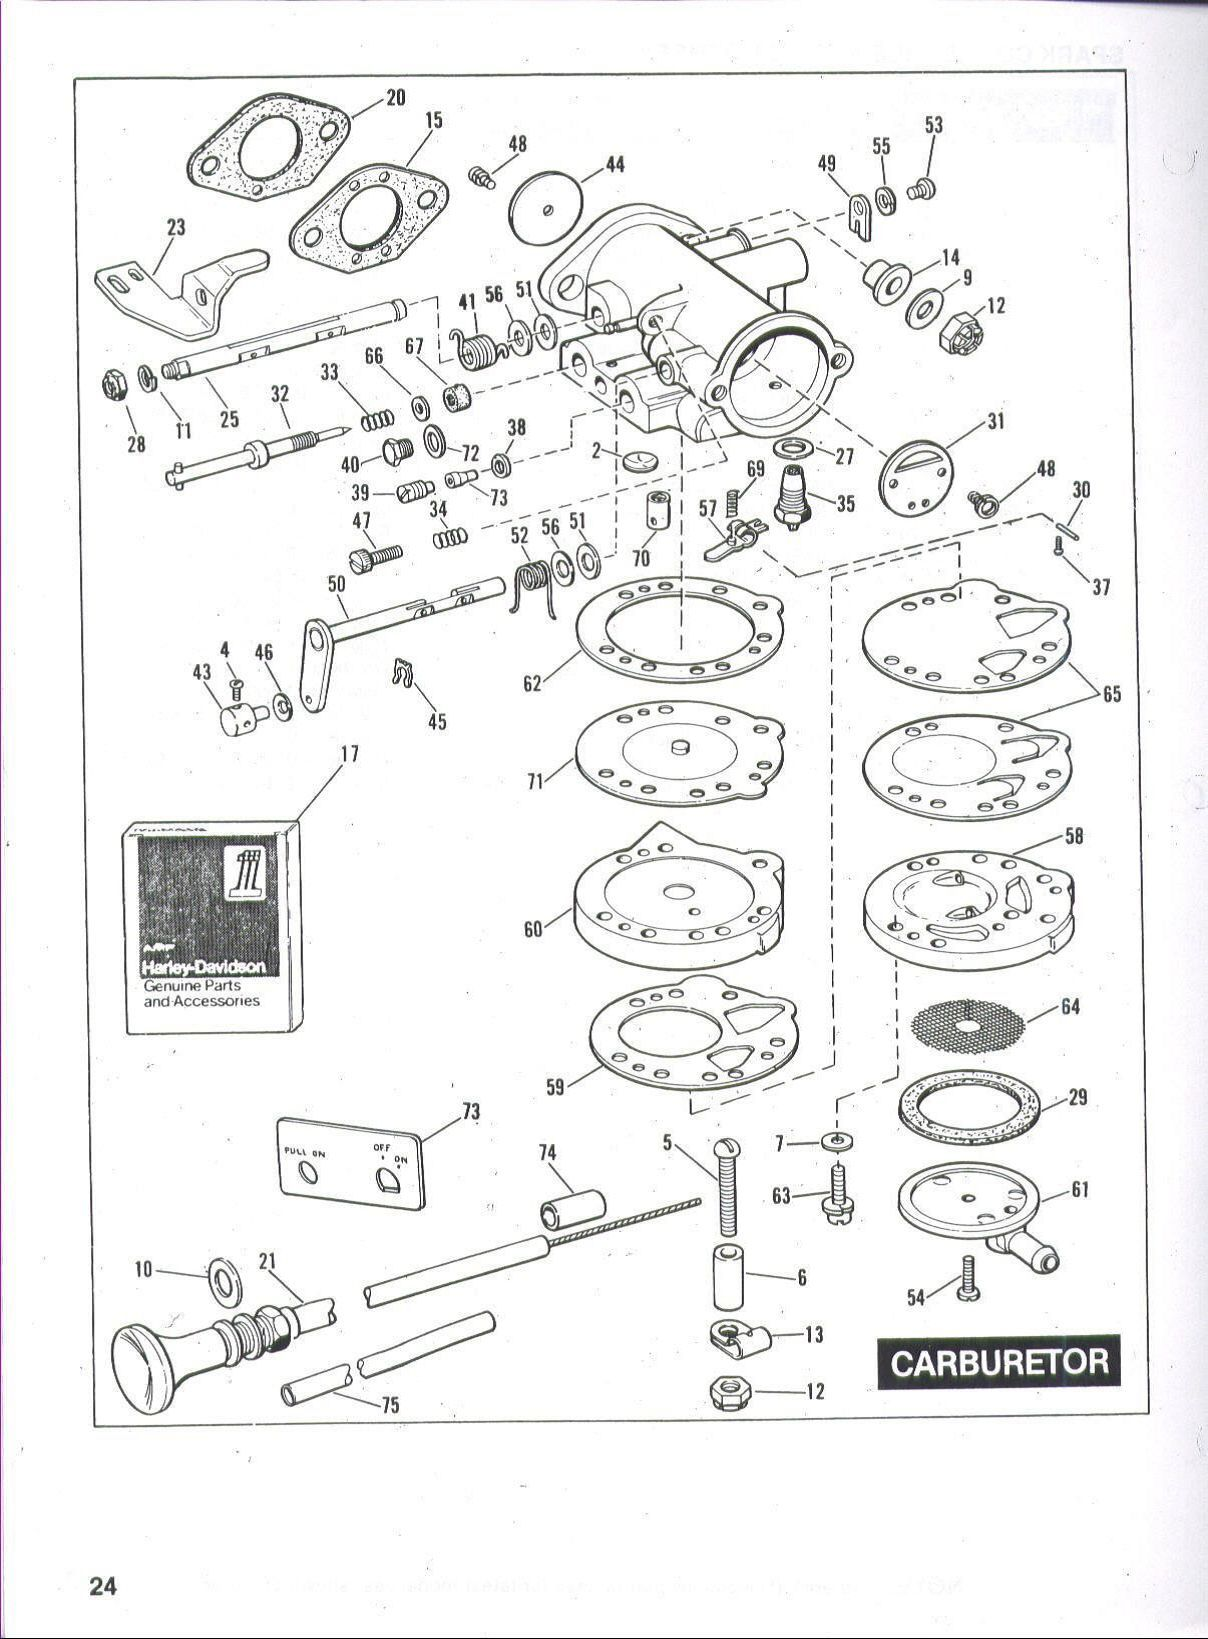 5176dbb44702a1adc4080edf7301936d harley davidson golf cart carburetor diagram utv stuff westinghouse golf cart wiring diagram at crackthecode.co